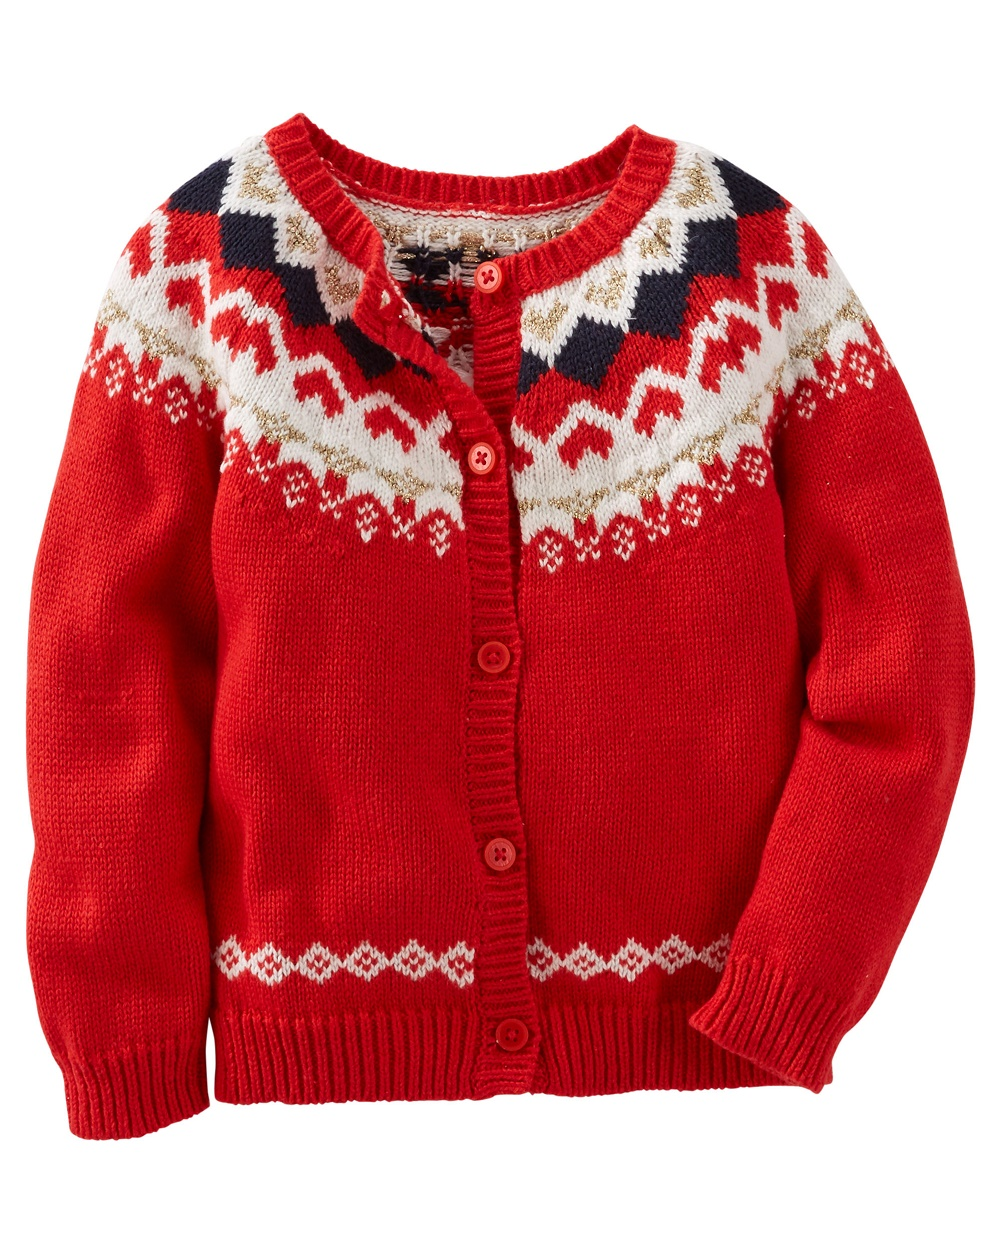 OshKosh B'gosh Baby Girls' Sparkle Fair Isle Sweater, 9 Months | eBay